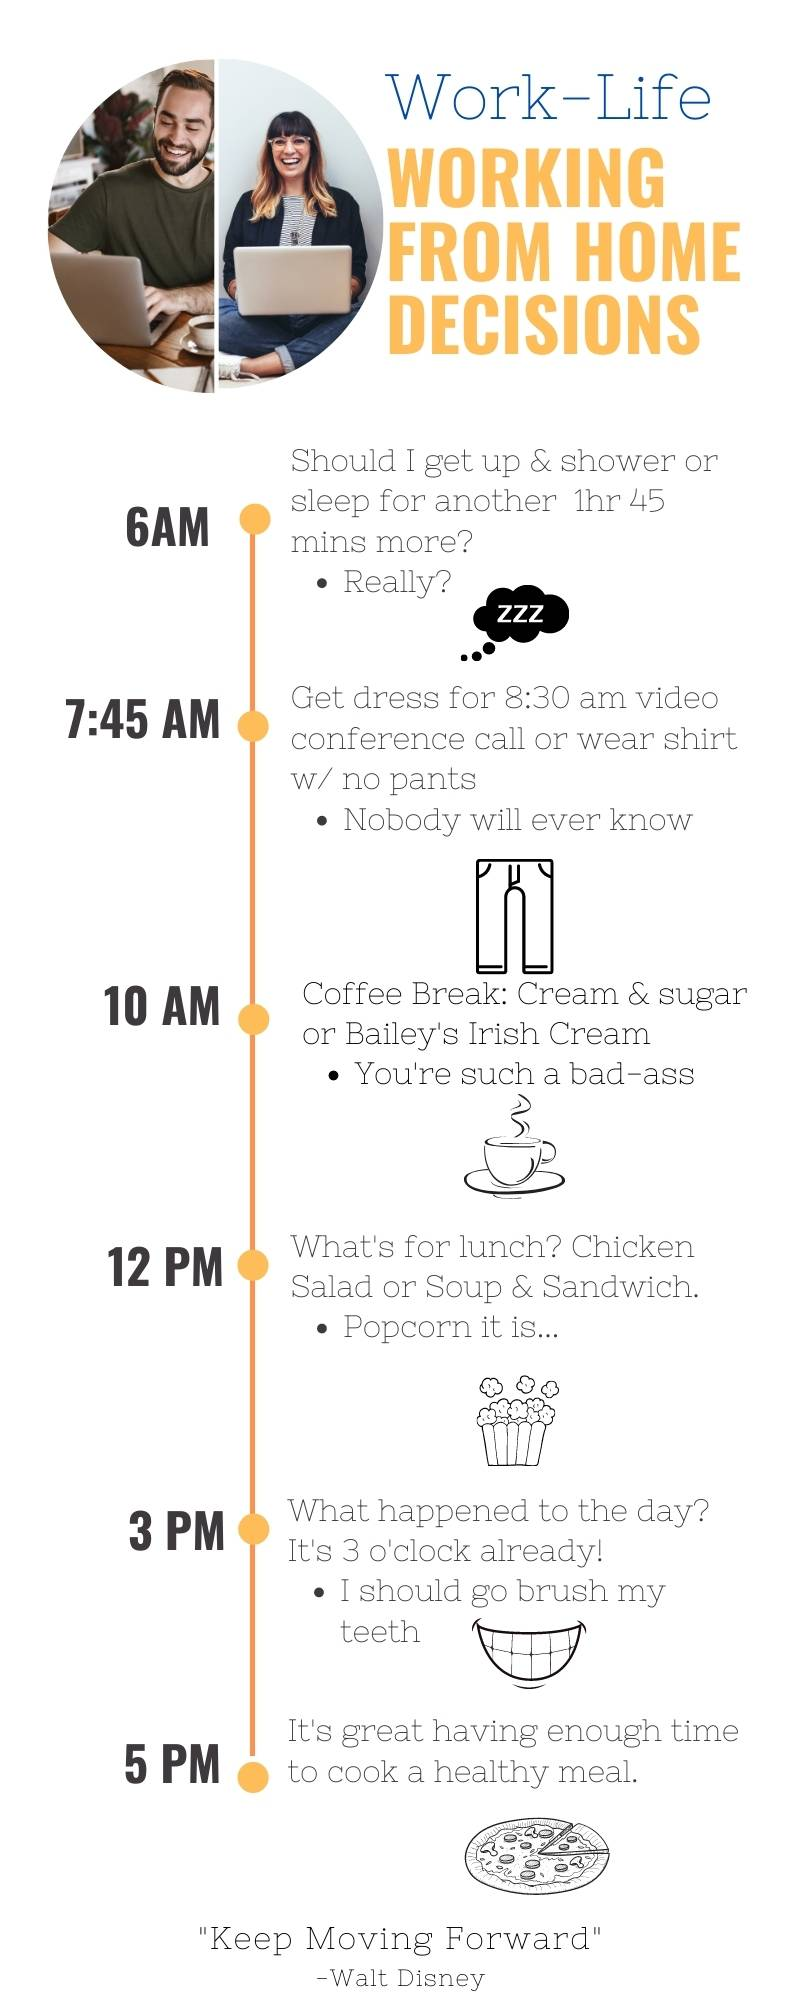 Everyday decisions when working from home infographic